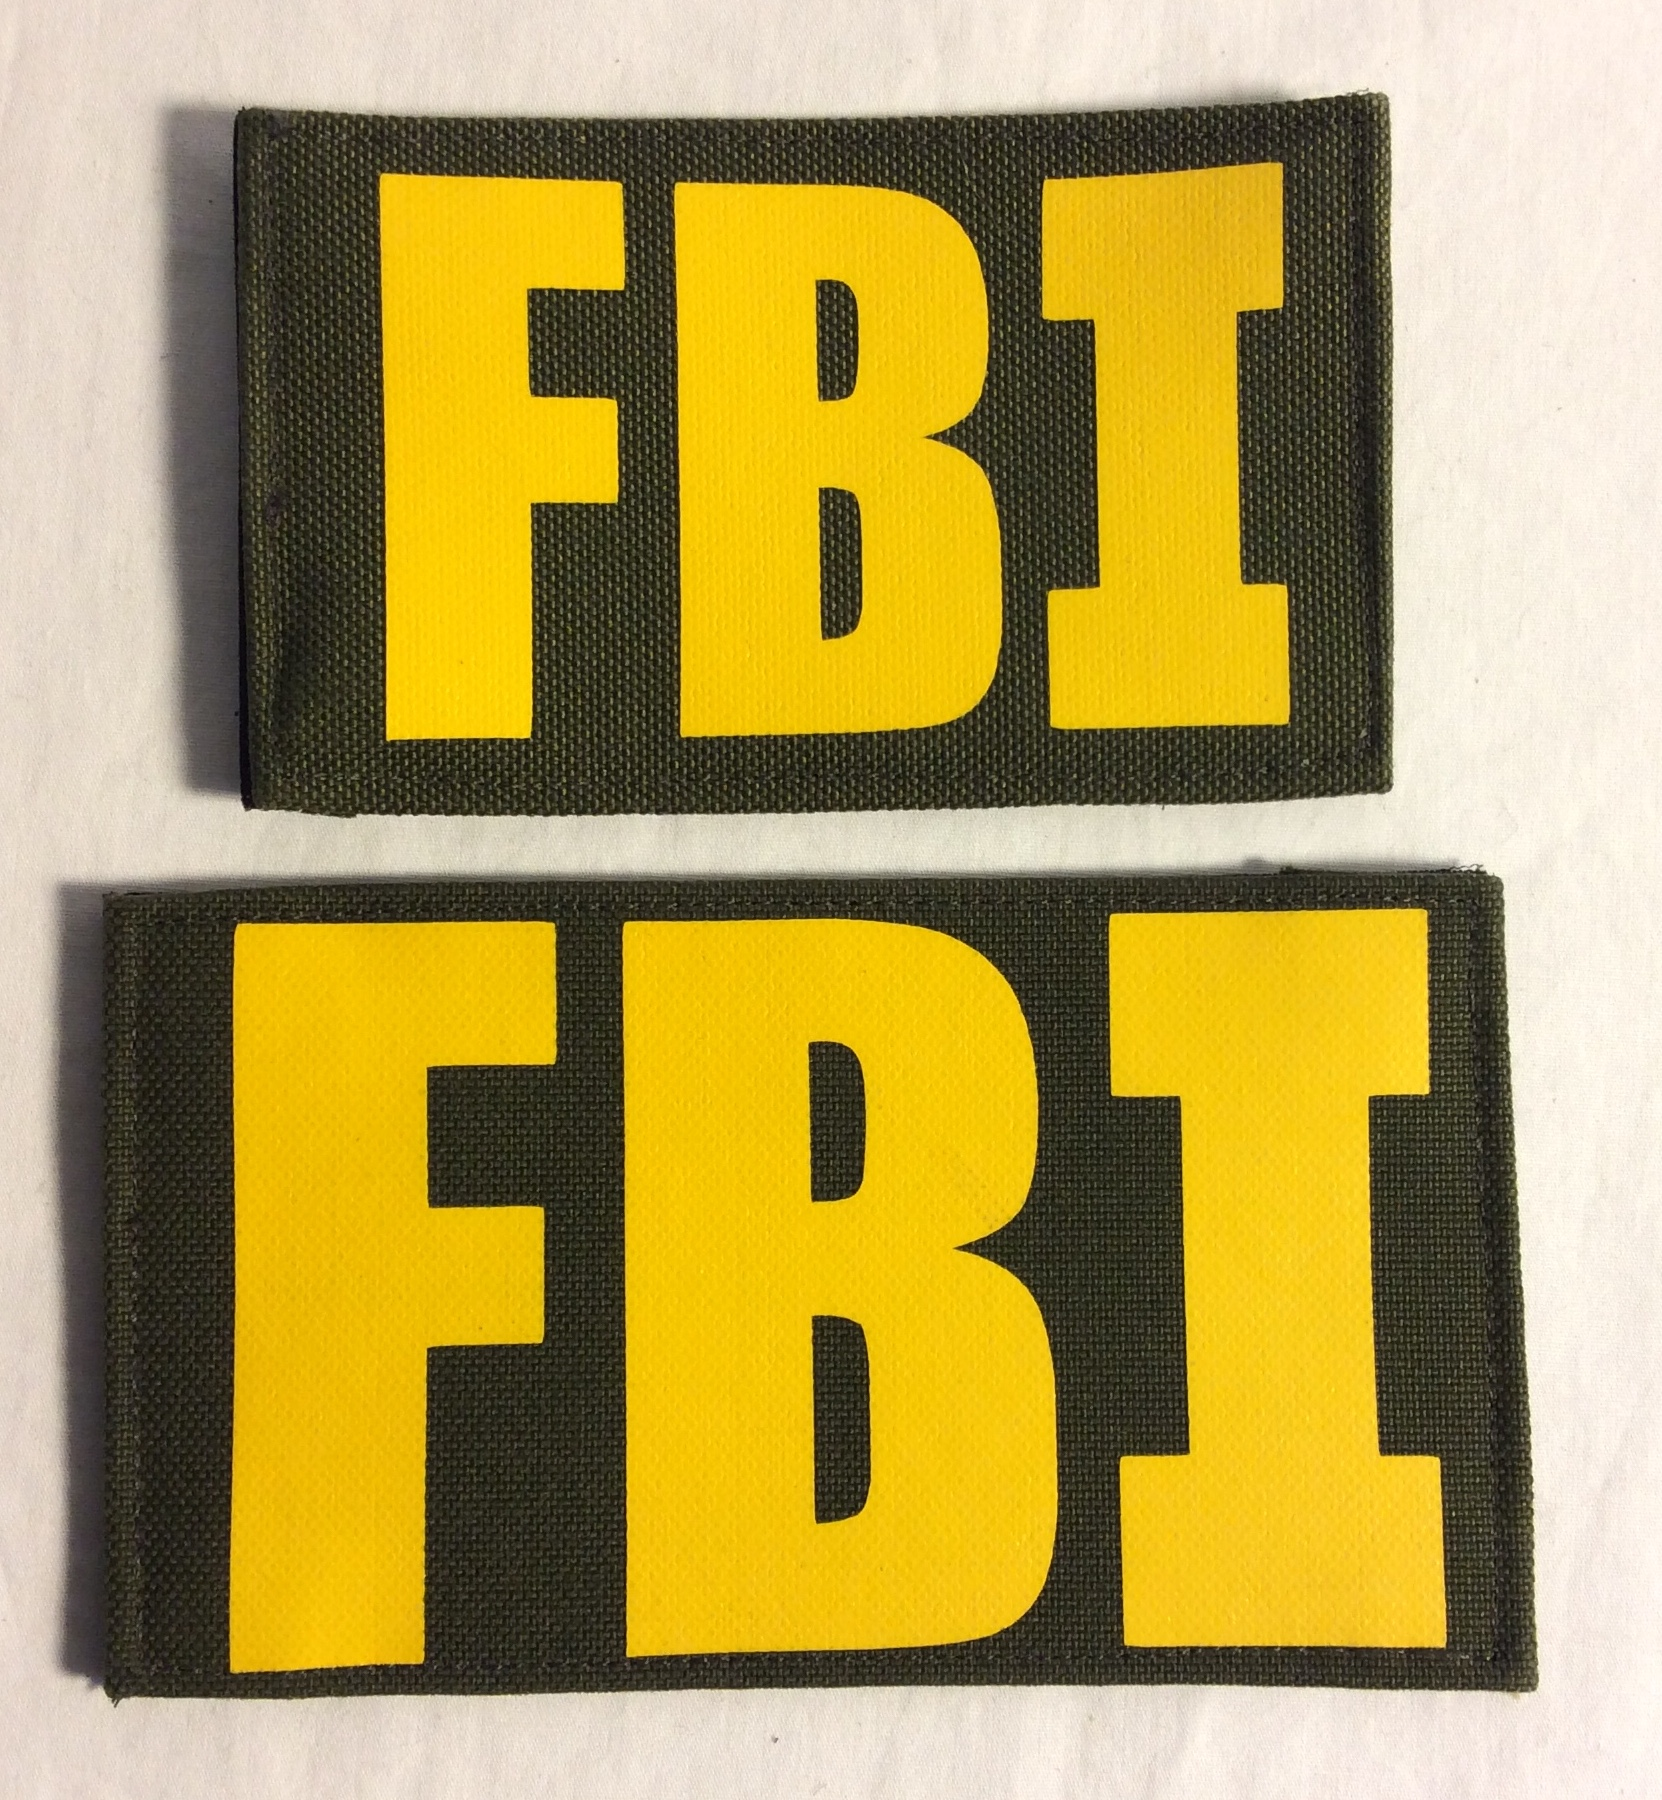 FBI Velcro Patches, Yellow on Green